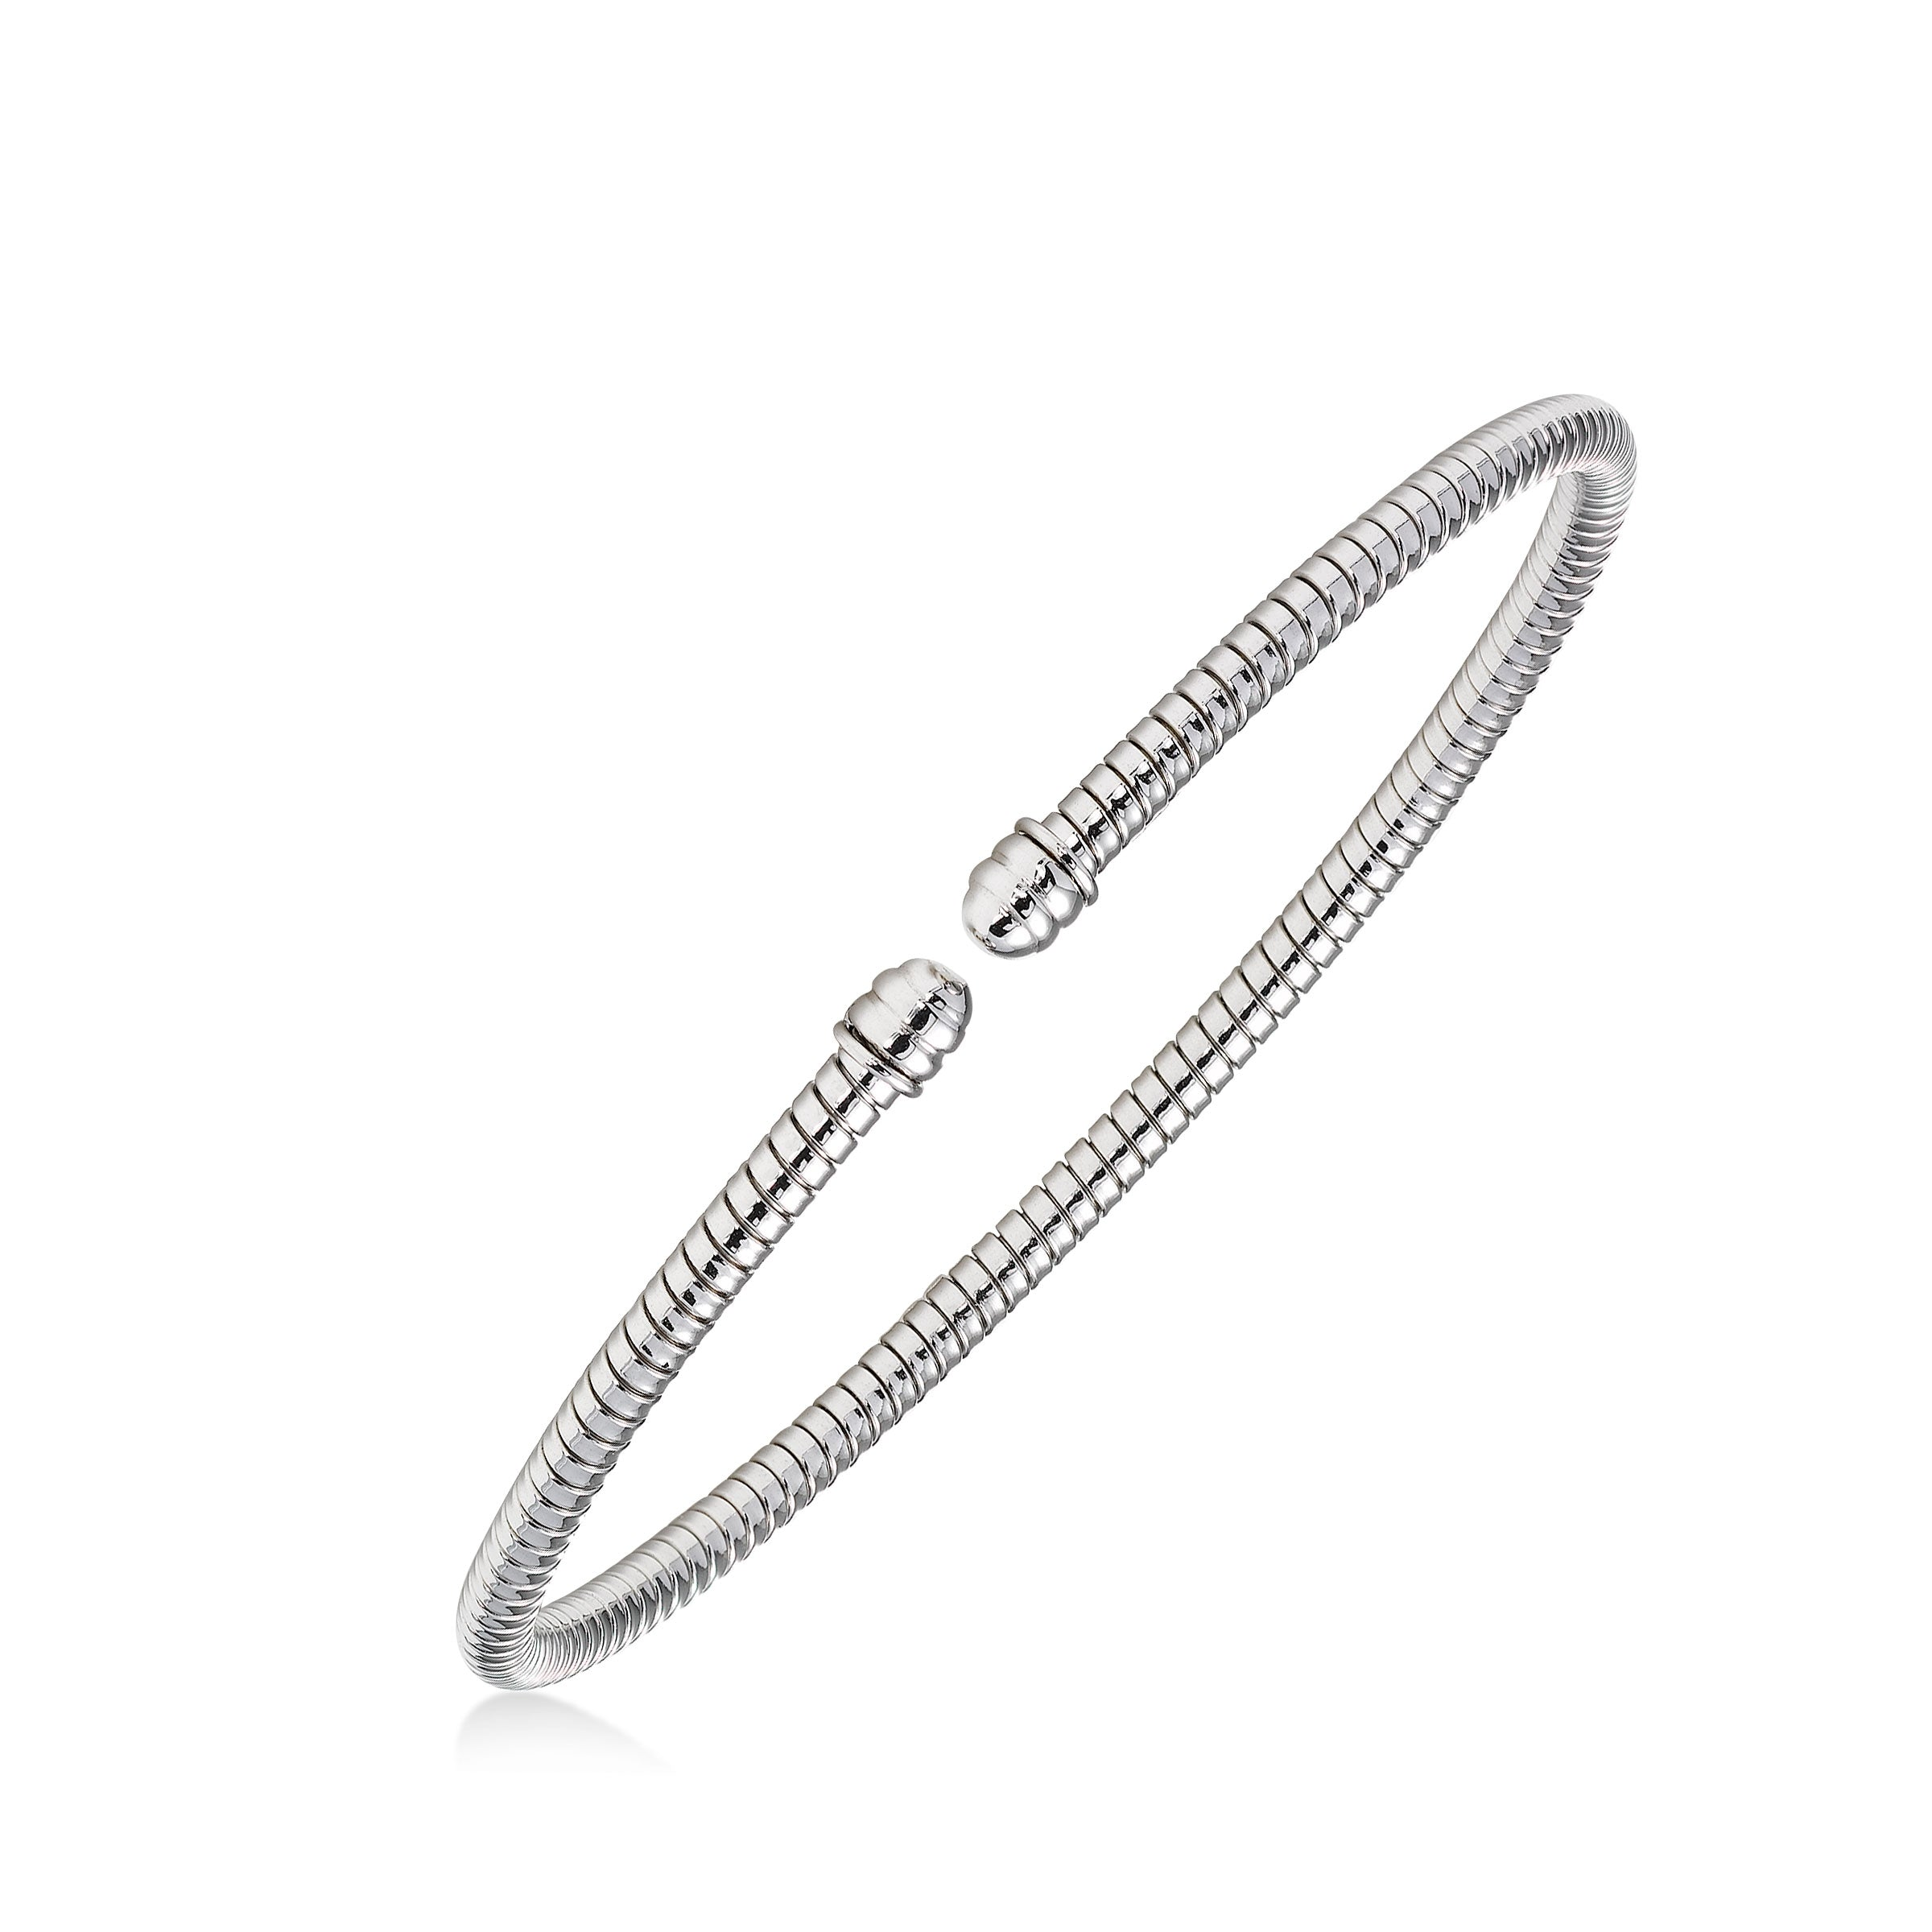 Flexible Open Cuff Bracelet, 14K White Gold